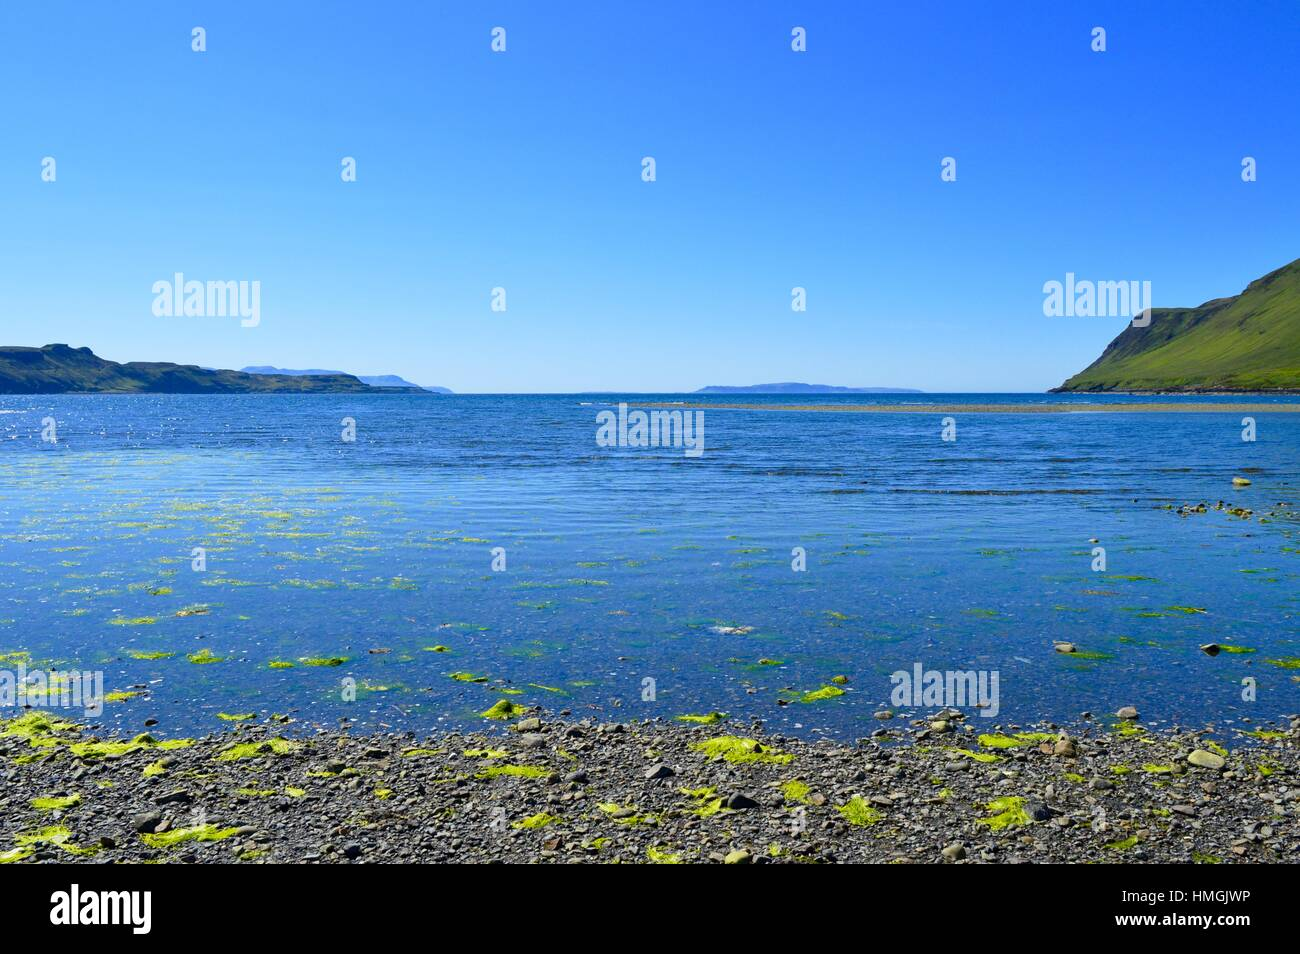 Looking out across Loch Brittle - Stock Image